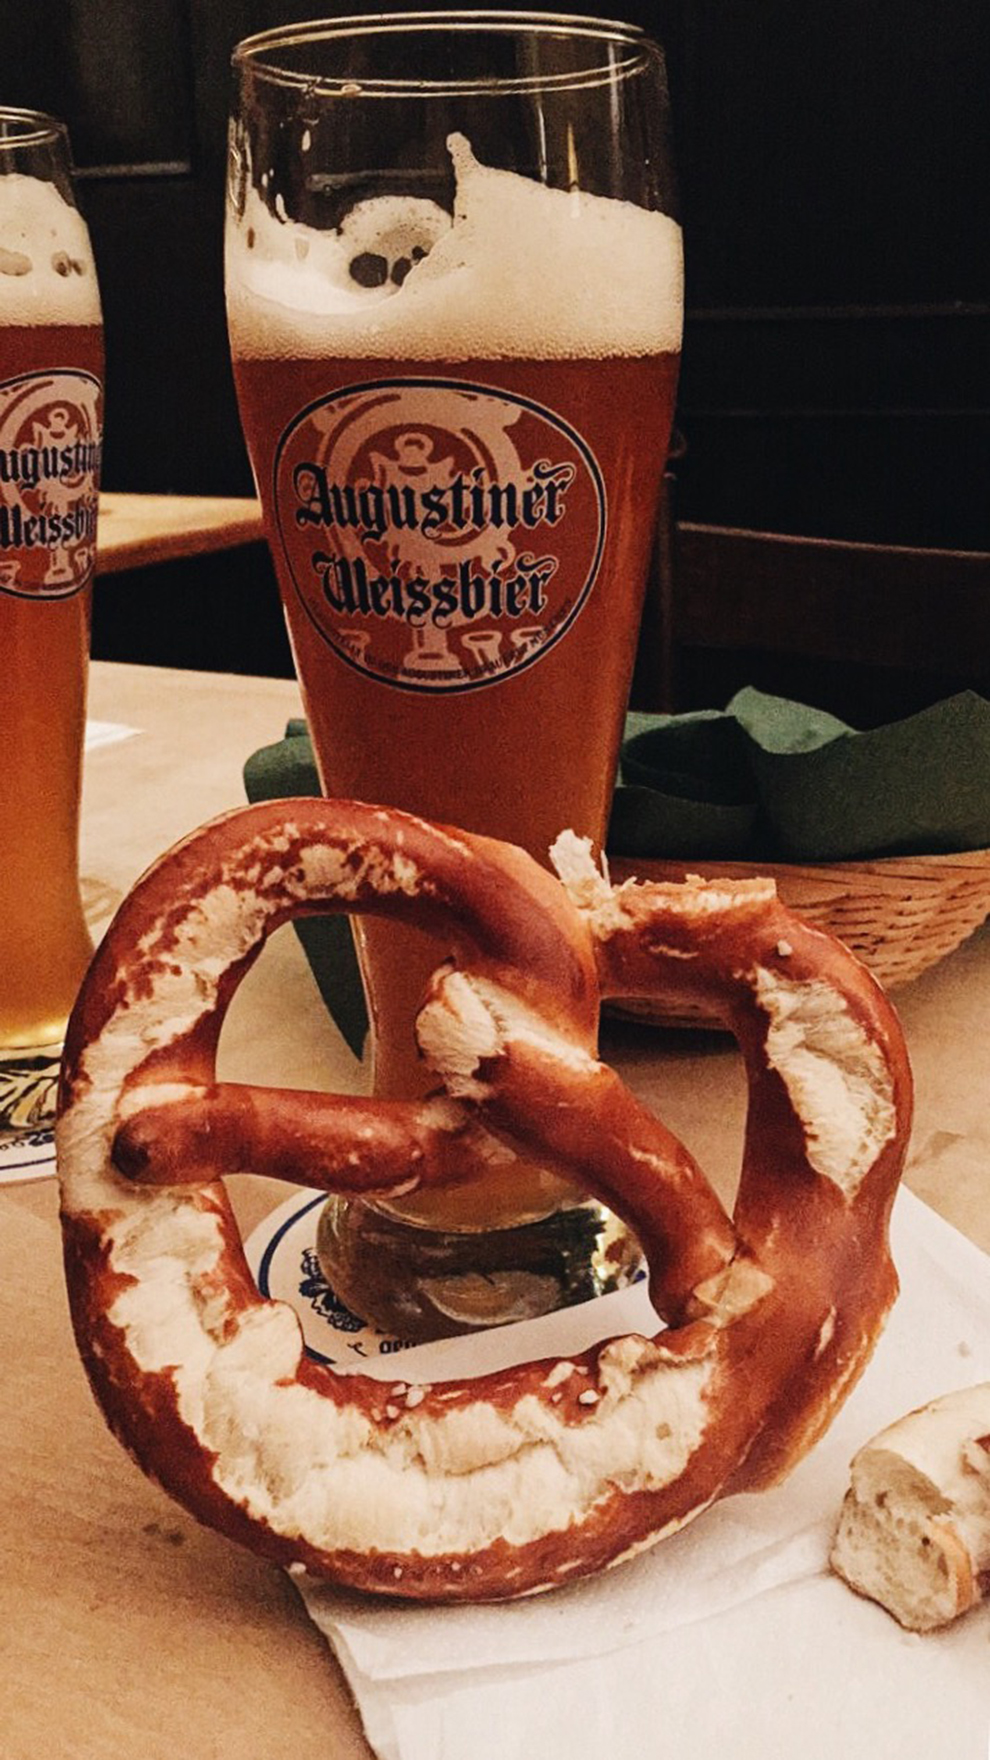 In America we have table bread, in Germany they have table pretzels!